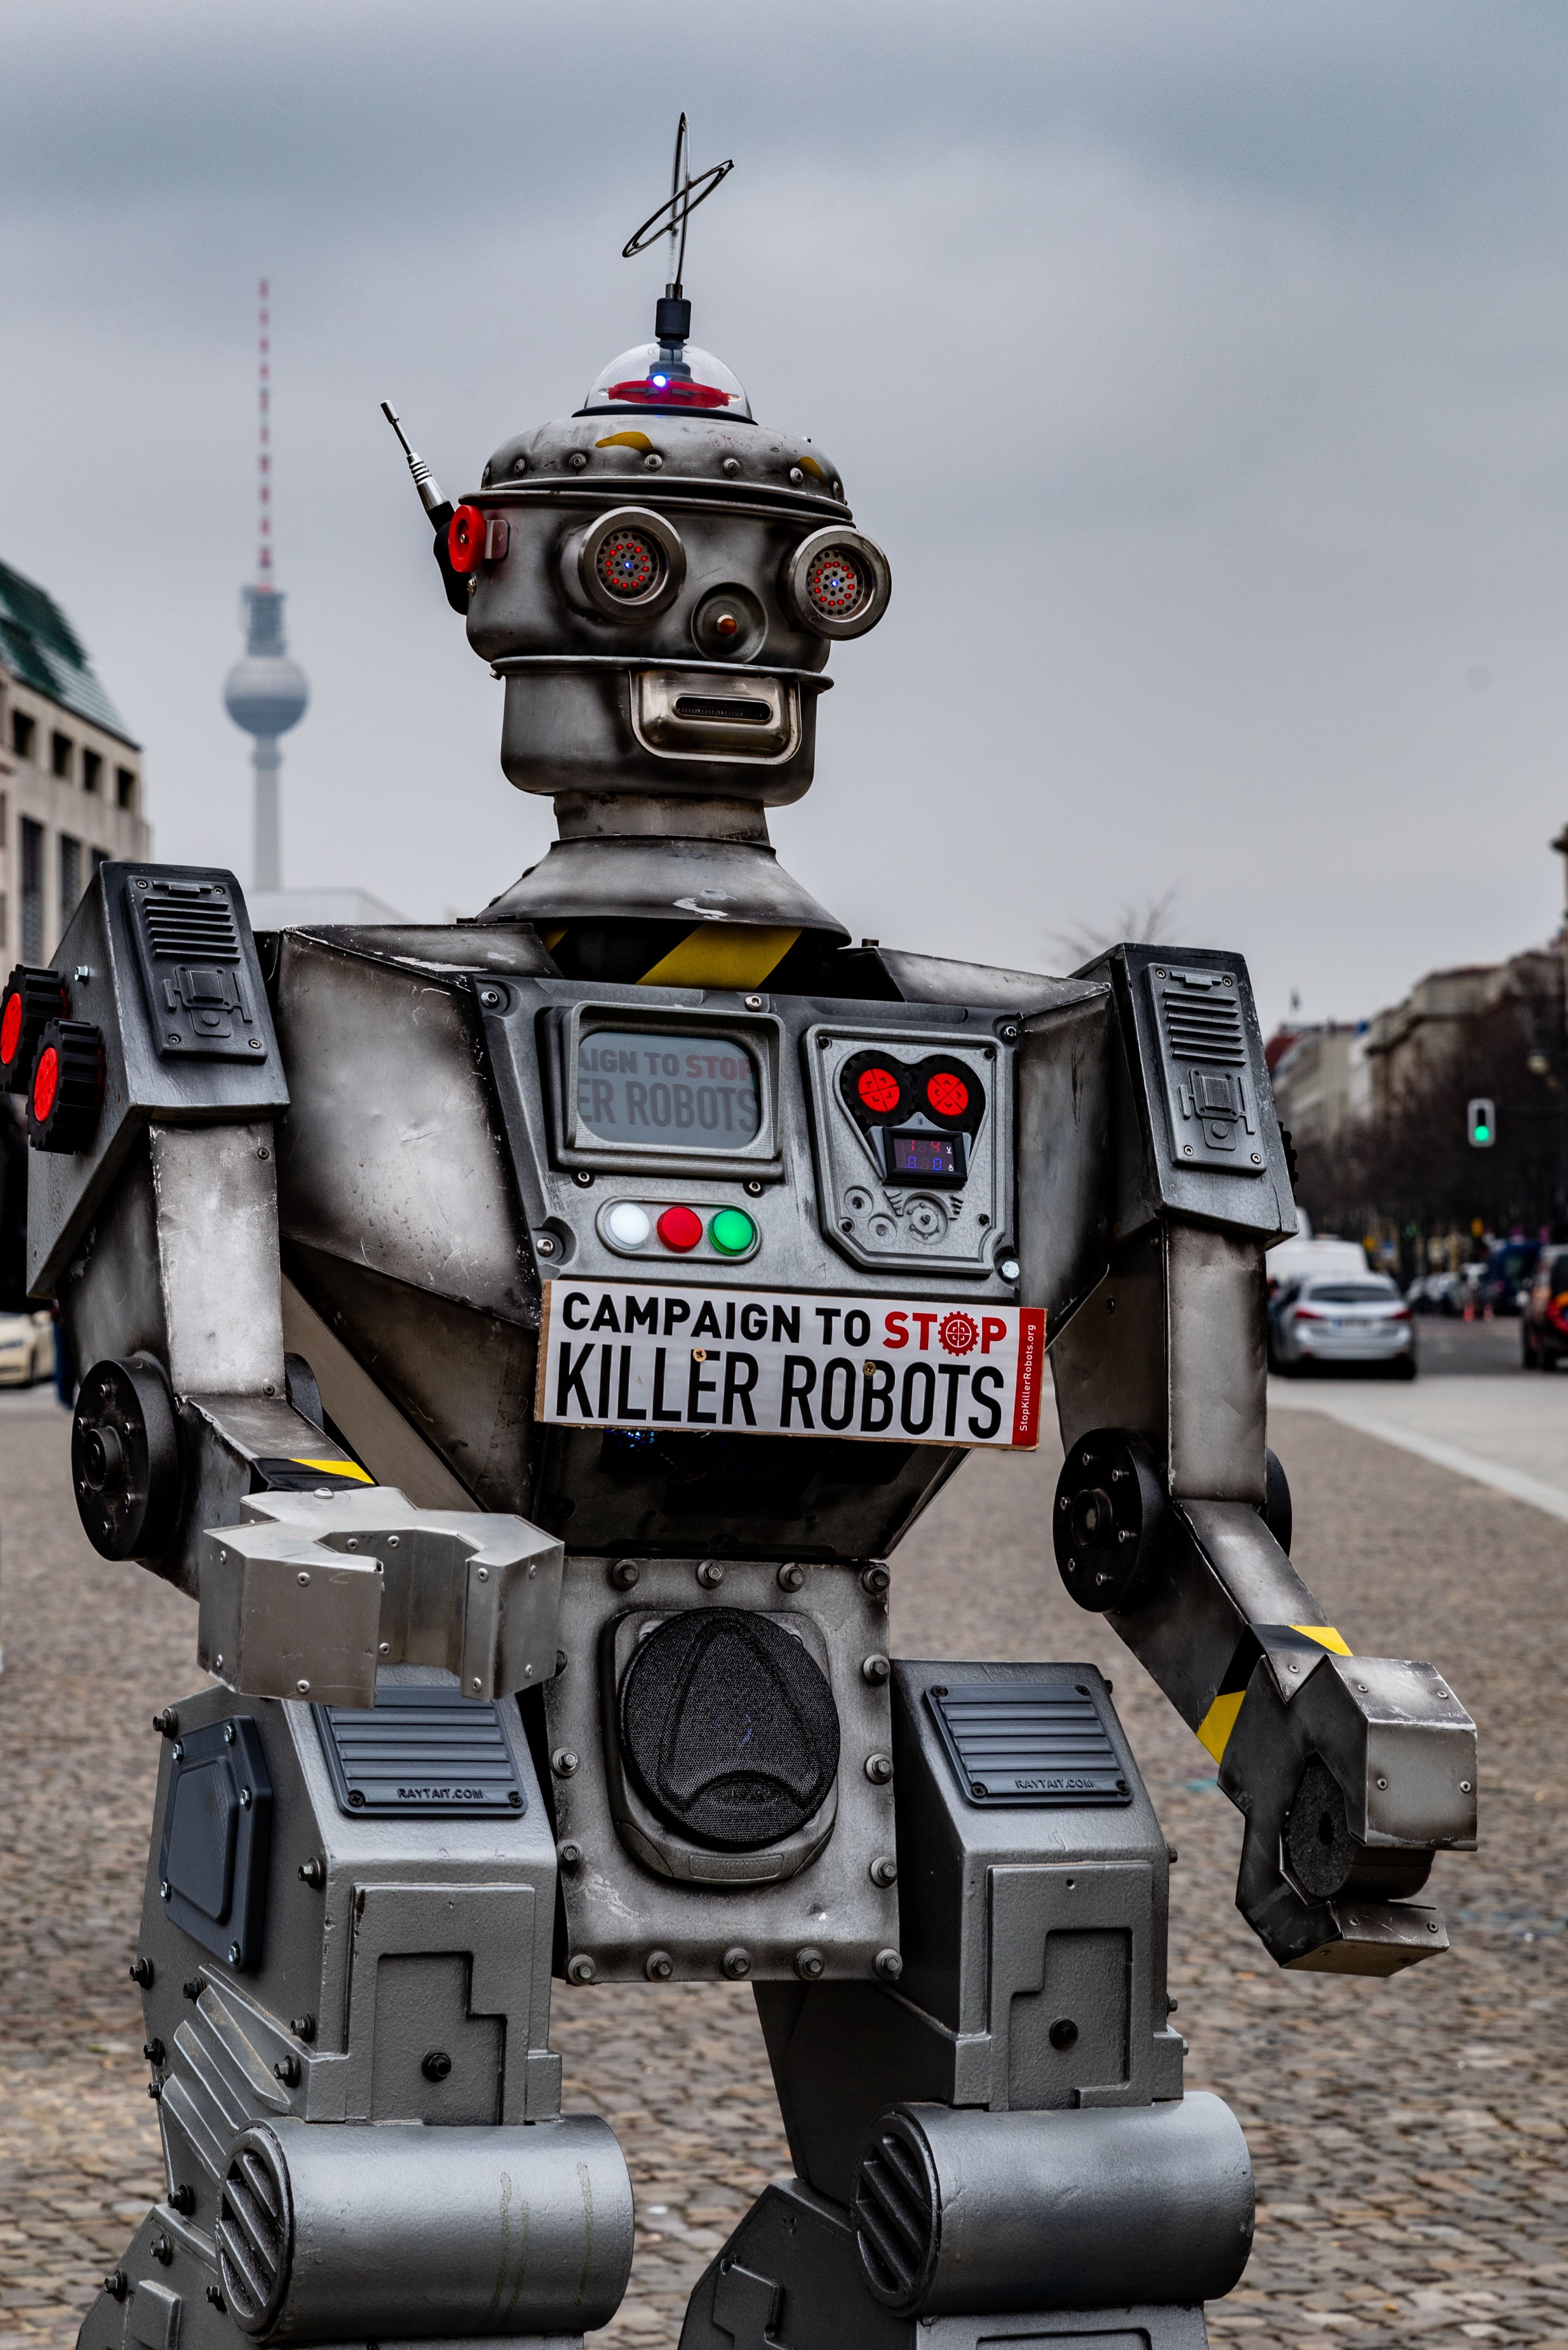 vintage looking robot with the Campaign to Stop Killer Robots logo on it's chest.